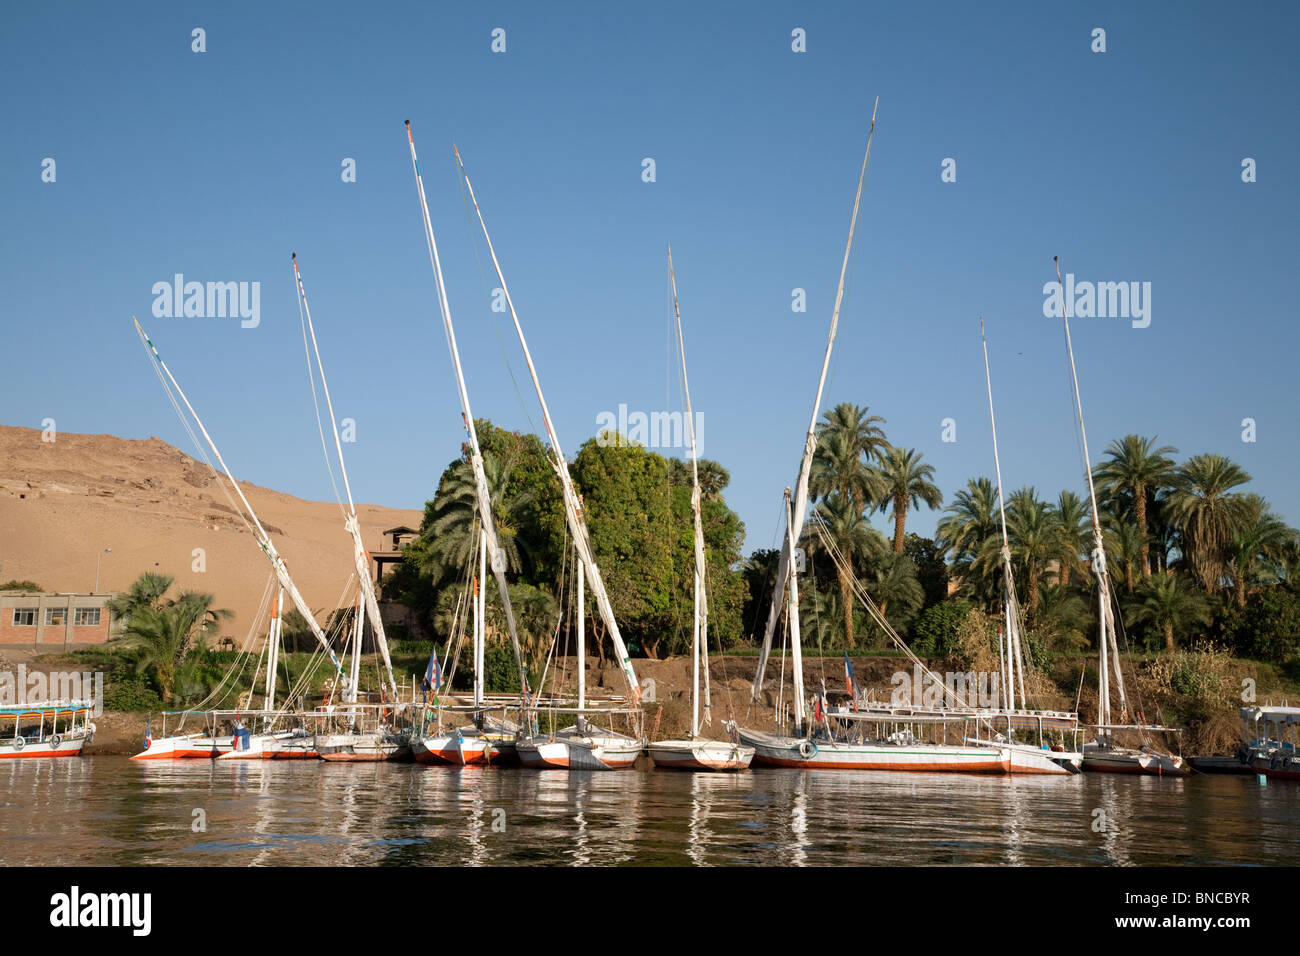 Feluccas moored on the bank,  the river Nile at Aswan, Upper Egypt - Stock Image